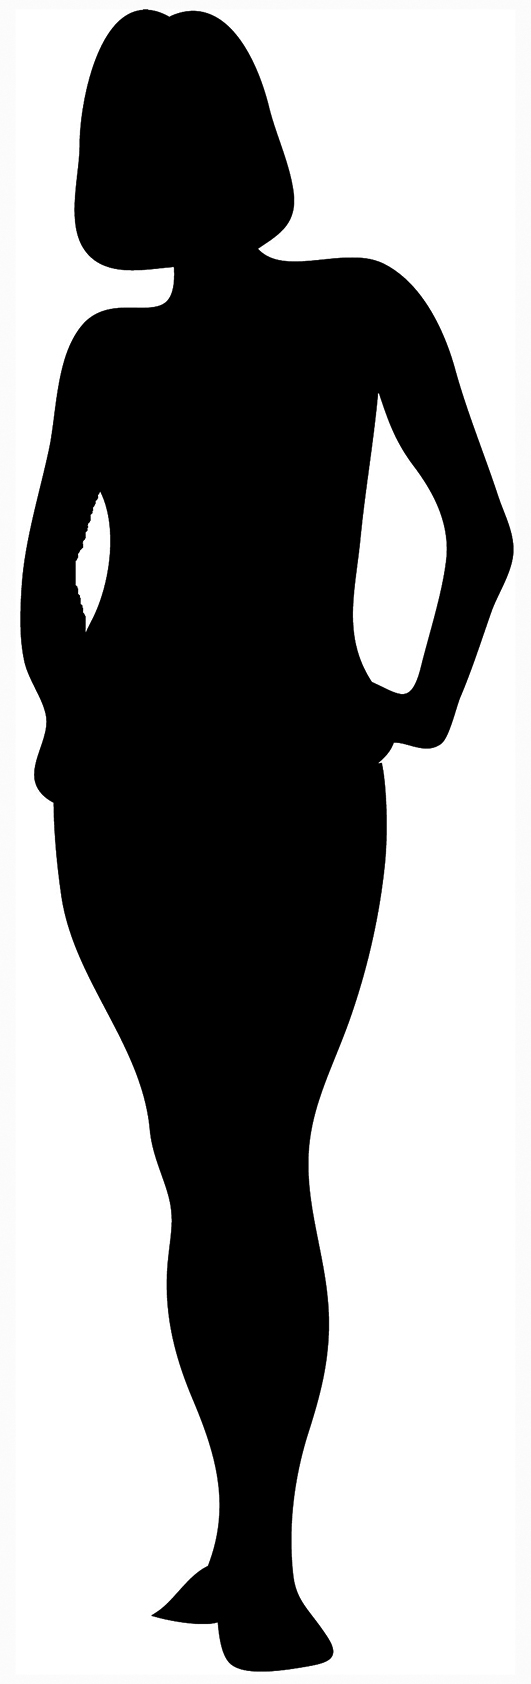 Black woman silhouette at. Afro clipart outline image freeuse download